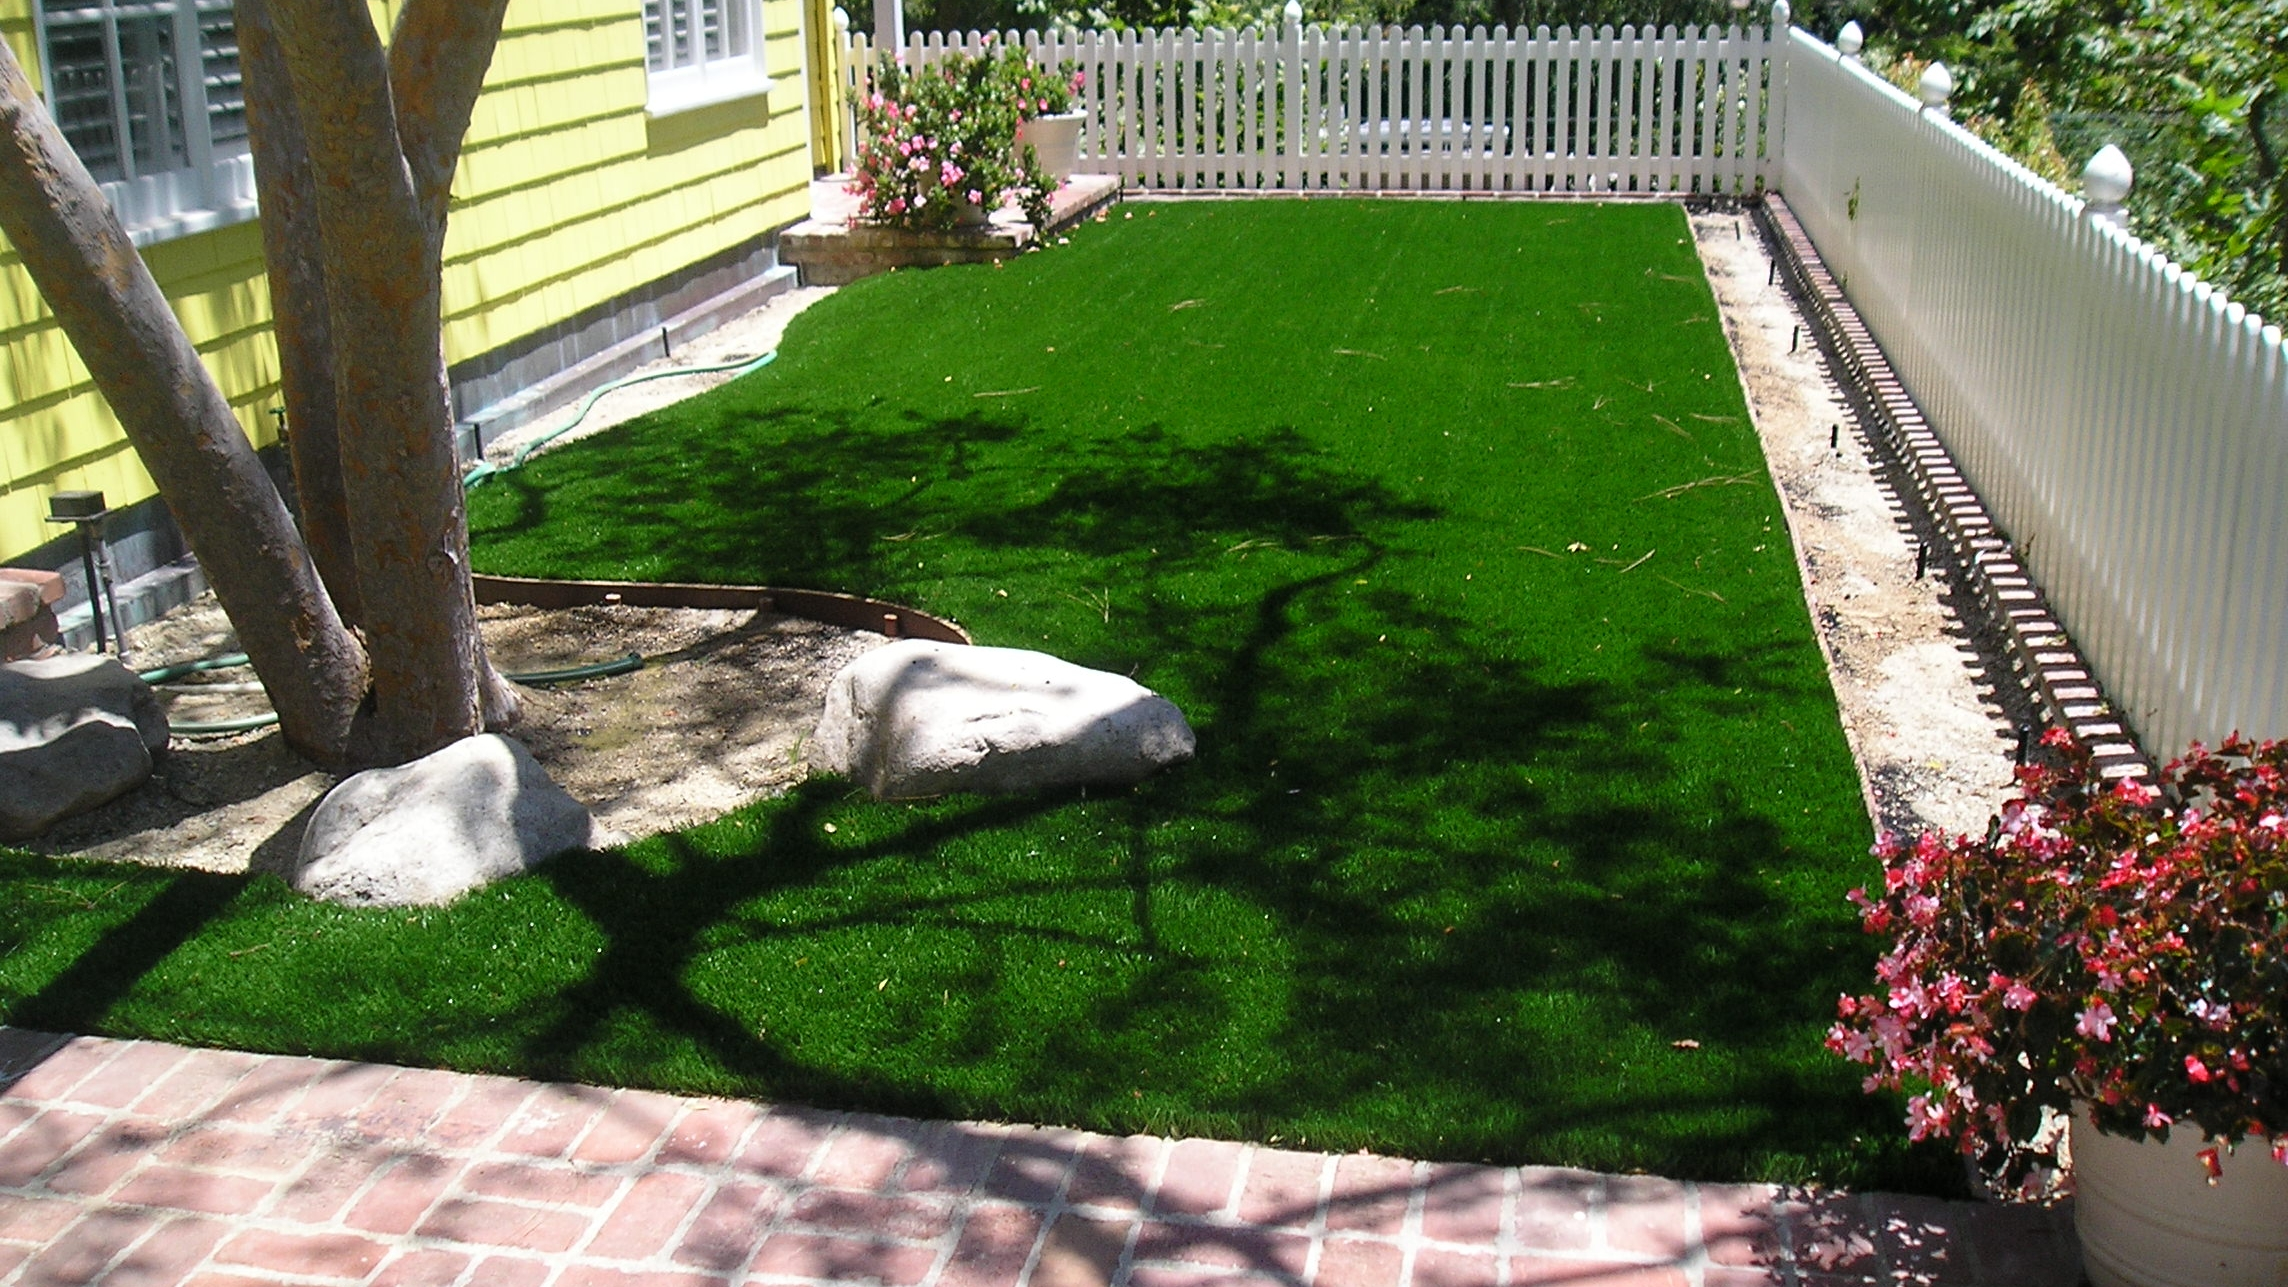 S Blade 50 residential landscaping,artificial turf residential,residential landscape,residential turf,residential artificial grass,fake grass for yard,backyard turf,turf backyard,turf yard,fake grass for backyard